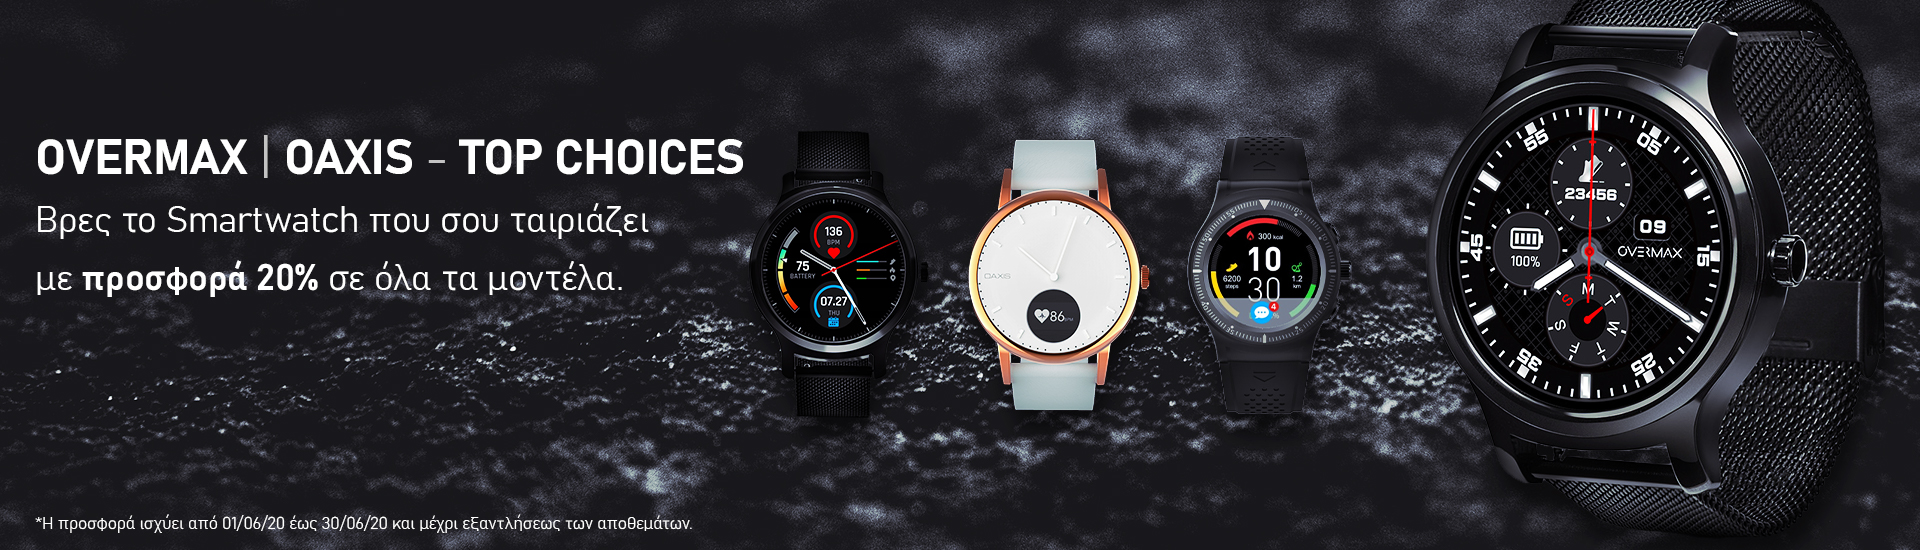 Smartwatches 20% Offer